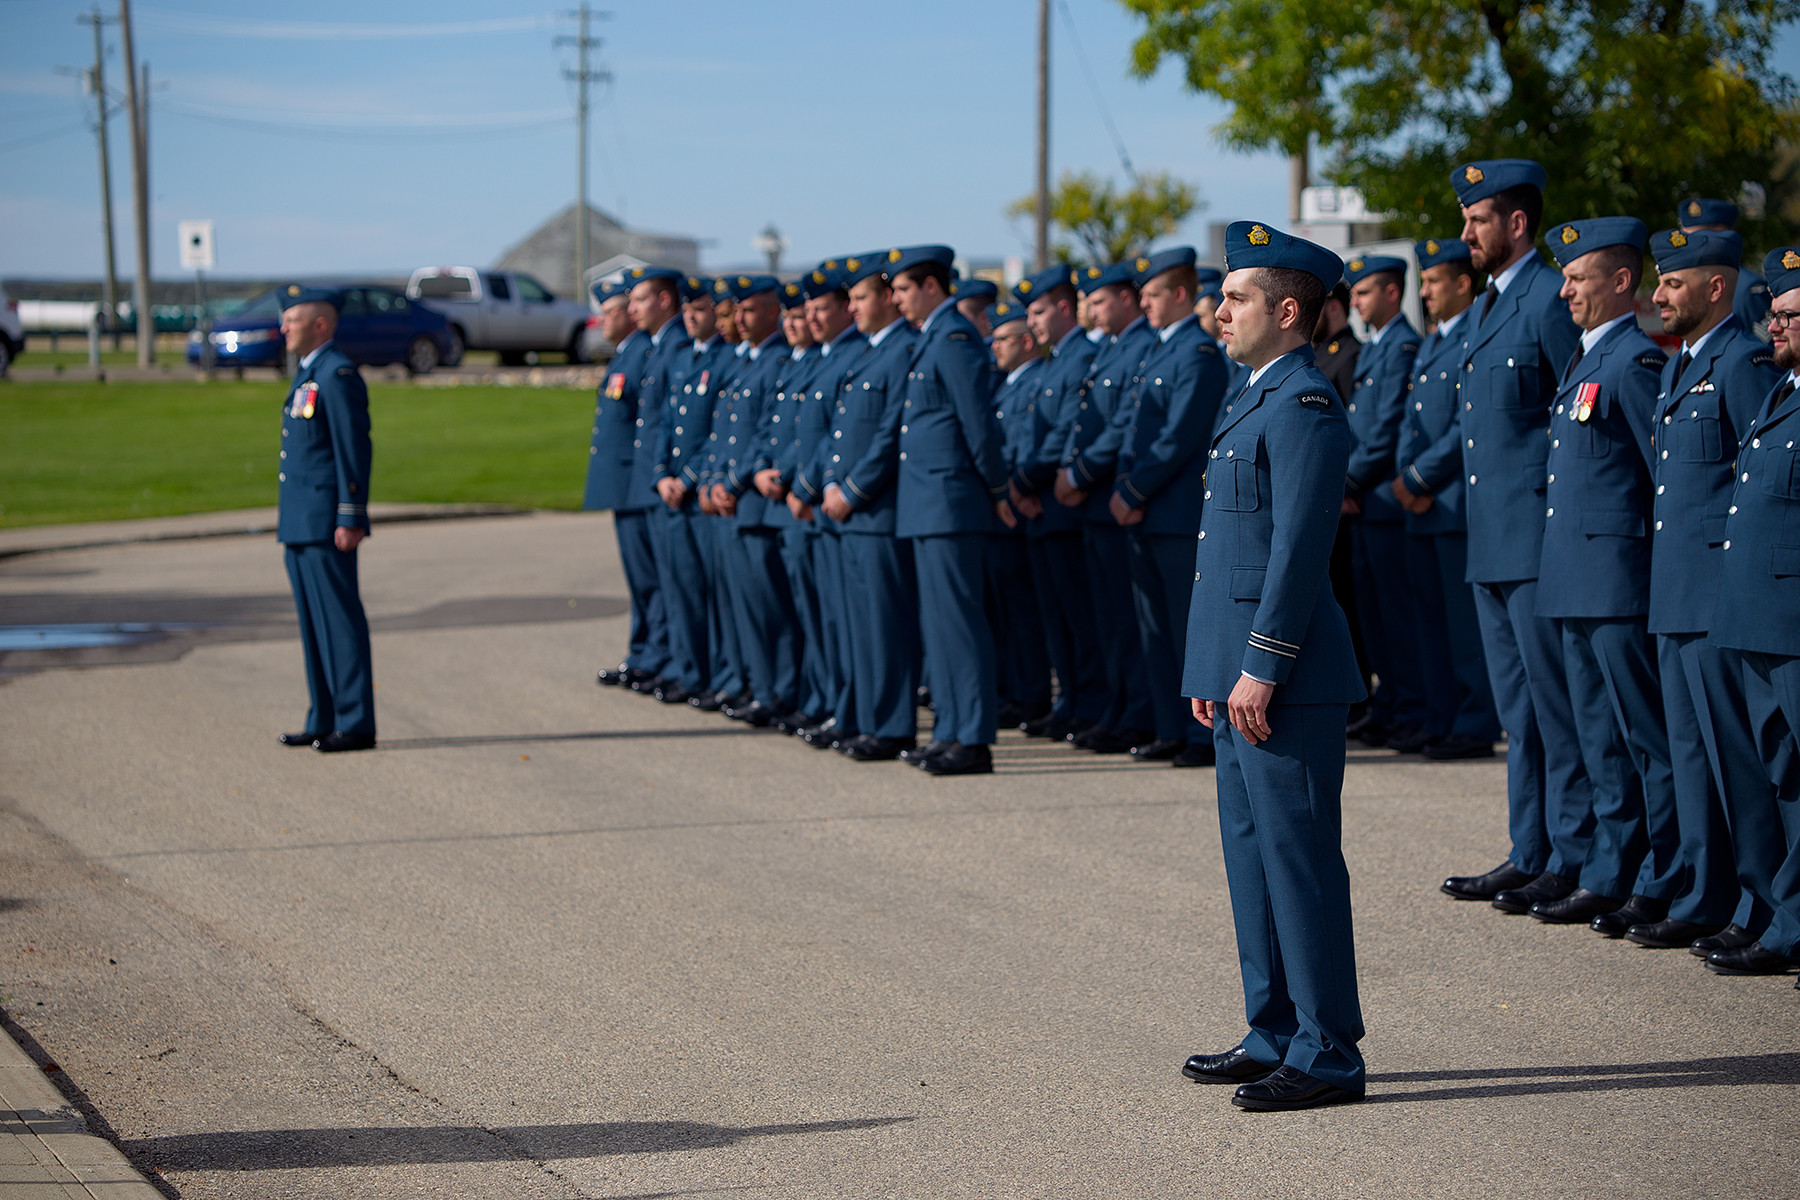 RCAF personnel of 15 Wing Moose Jaw, Saskatchewan, mark the 79th anniversary of the Battle of Britain on September 15, 2019. PHOTO: Submitted